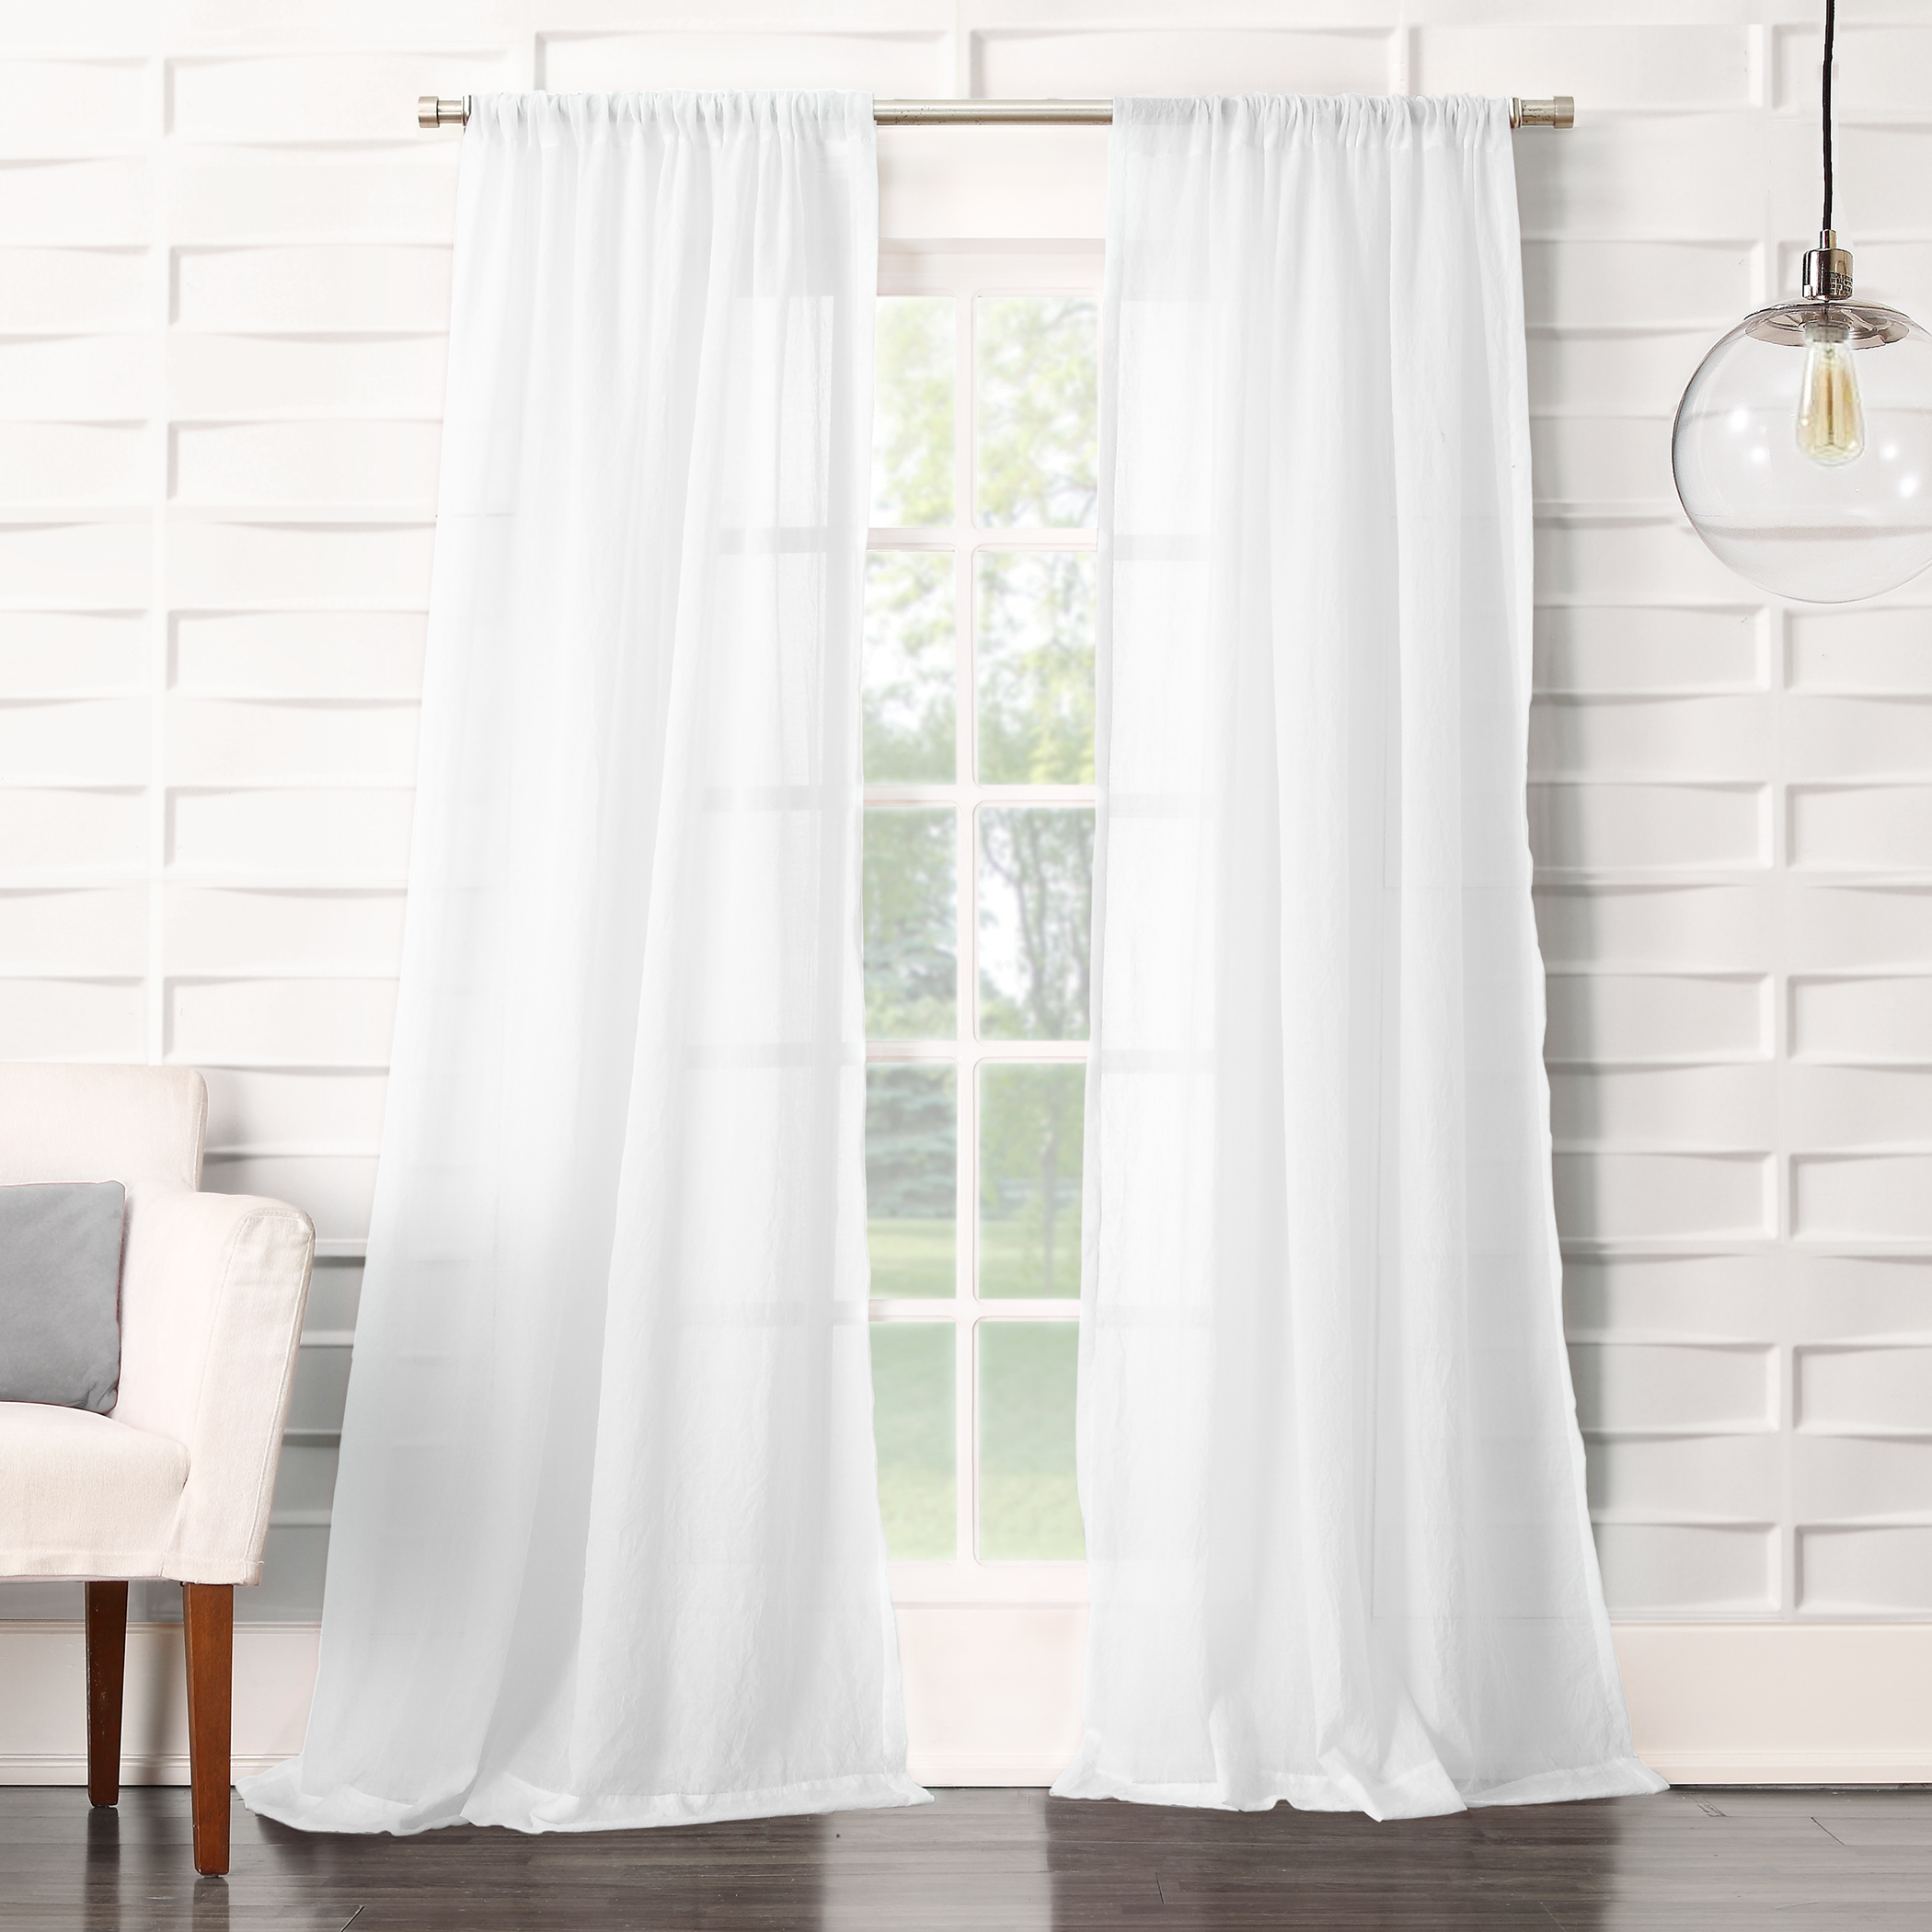 """120""""x50"""" Avril Crushed Textured Semi-Sheer Rod Pocket Curtain Panel White - No. 918"""